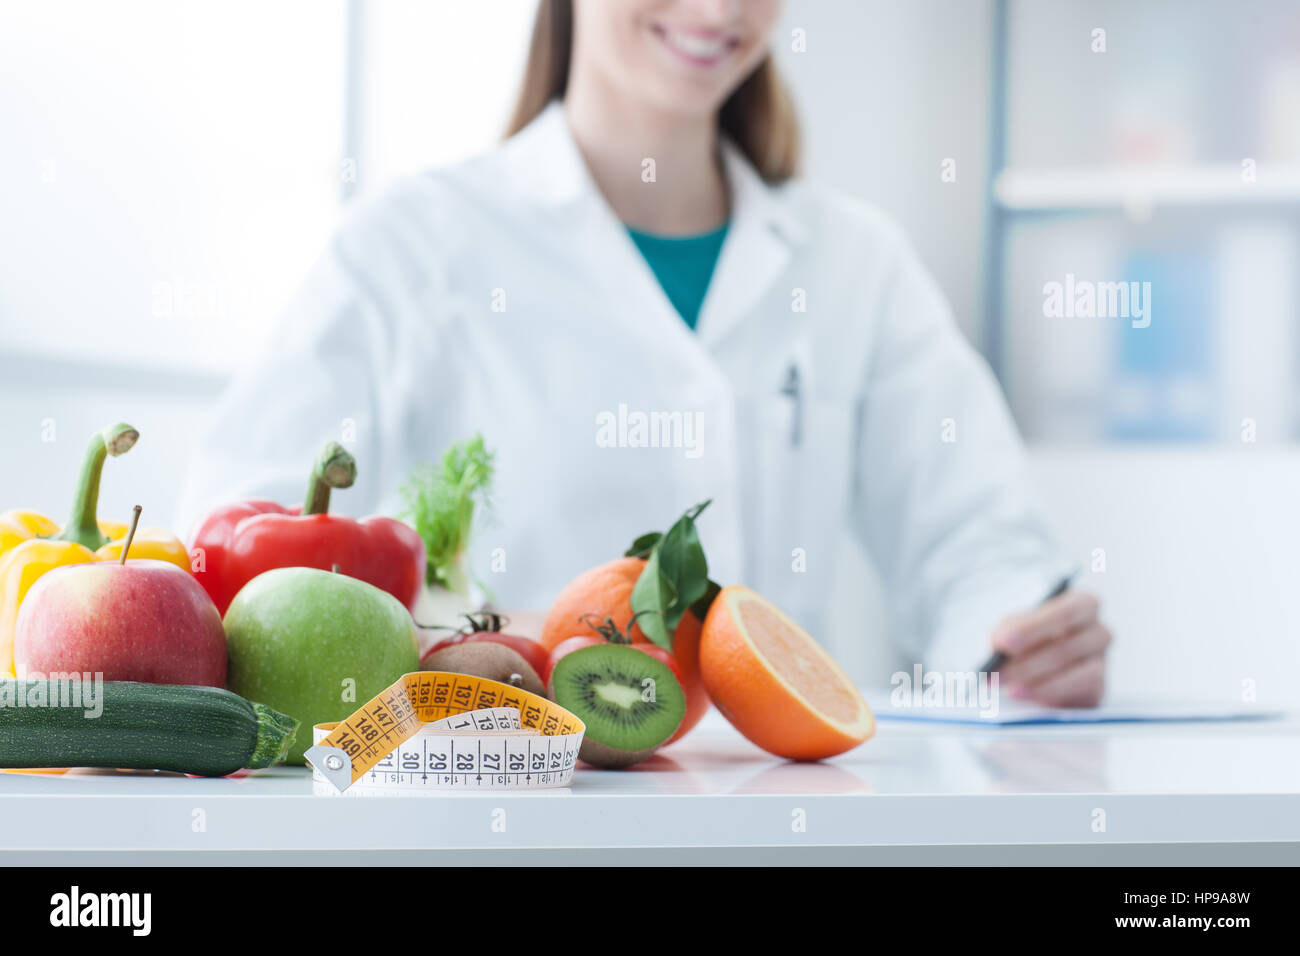 Sensational Nutritionist Desk With Healthy Fruit Vegetables And A Download Free Architecture Designs Scobabritishbridgeorg